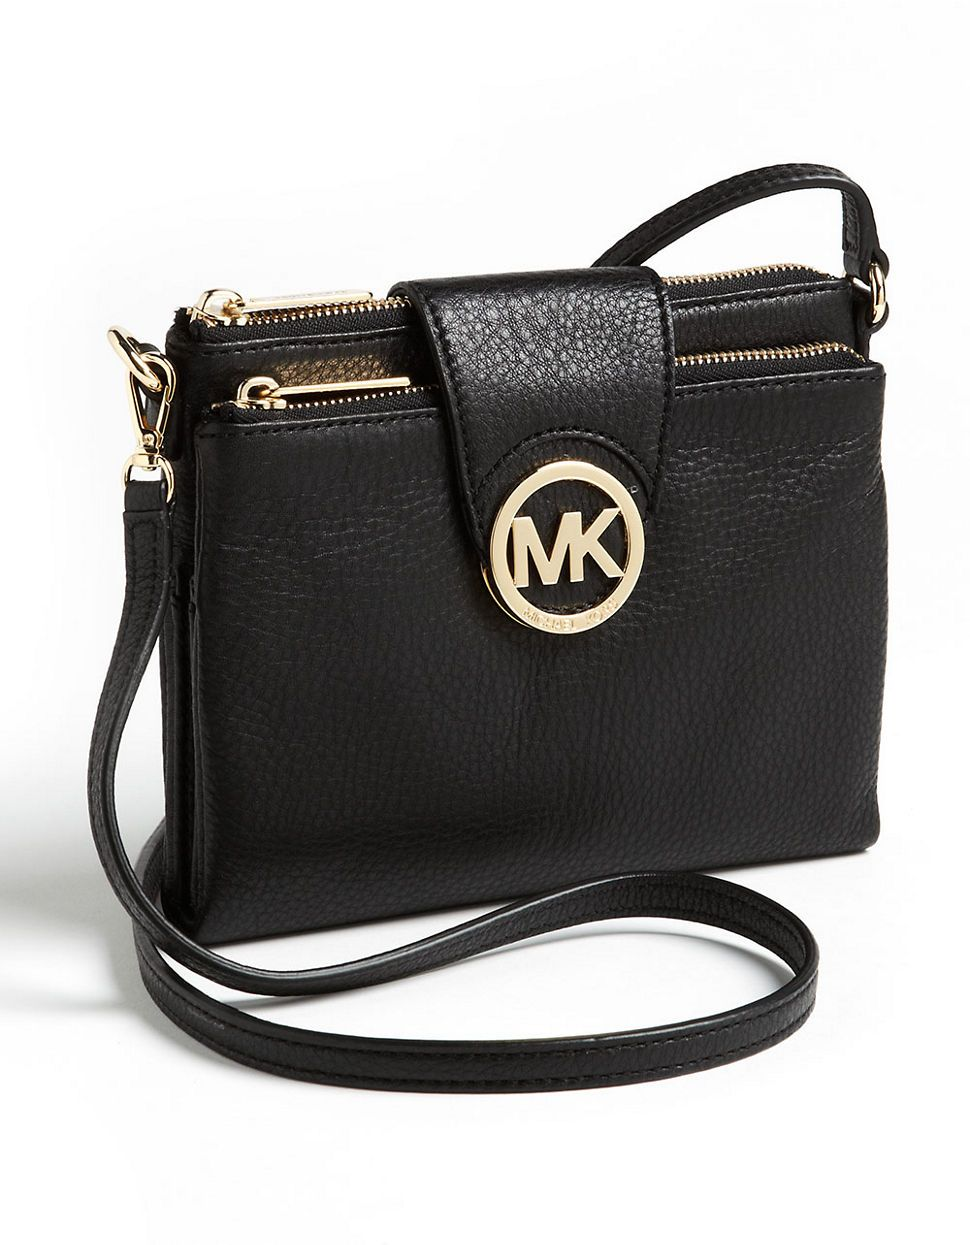 236141213da0 Michael Michael Kors Fulton Crossbody Bag Black | Women's Fashion ...